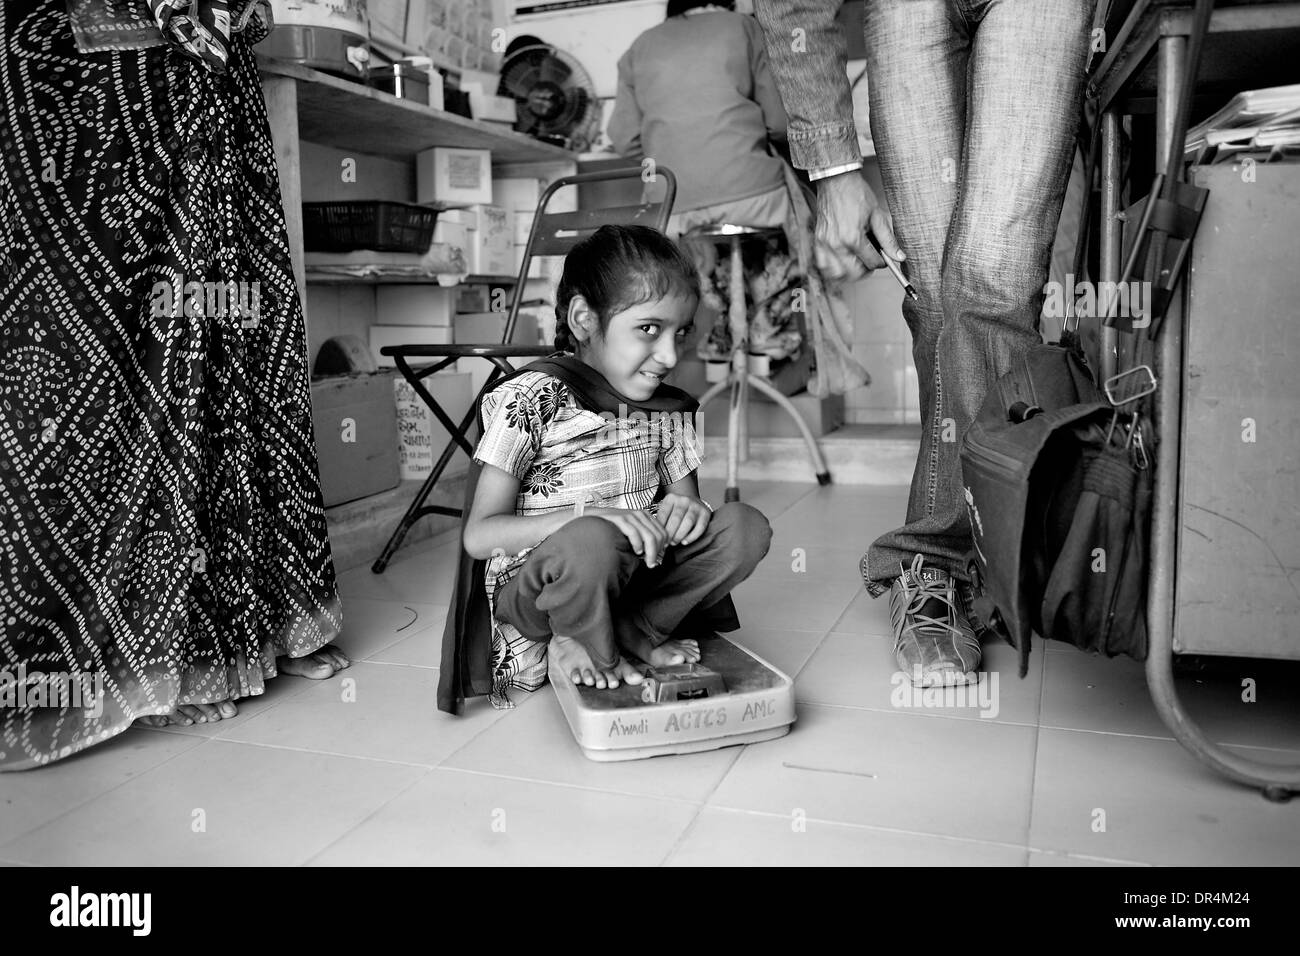 Jan 24, 2009 - Ahmedabad, Gujarat, India - Munni at the DOTS centre at Ahmedabad. The extra pulmonary TB has affected her spinal cord and that is affecting the physical control and movement of her eyes as well. (Credit Image: © Subhash Sharma/ZUMA Press) - Stock Image